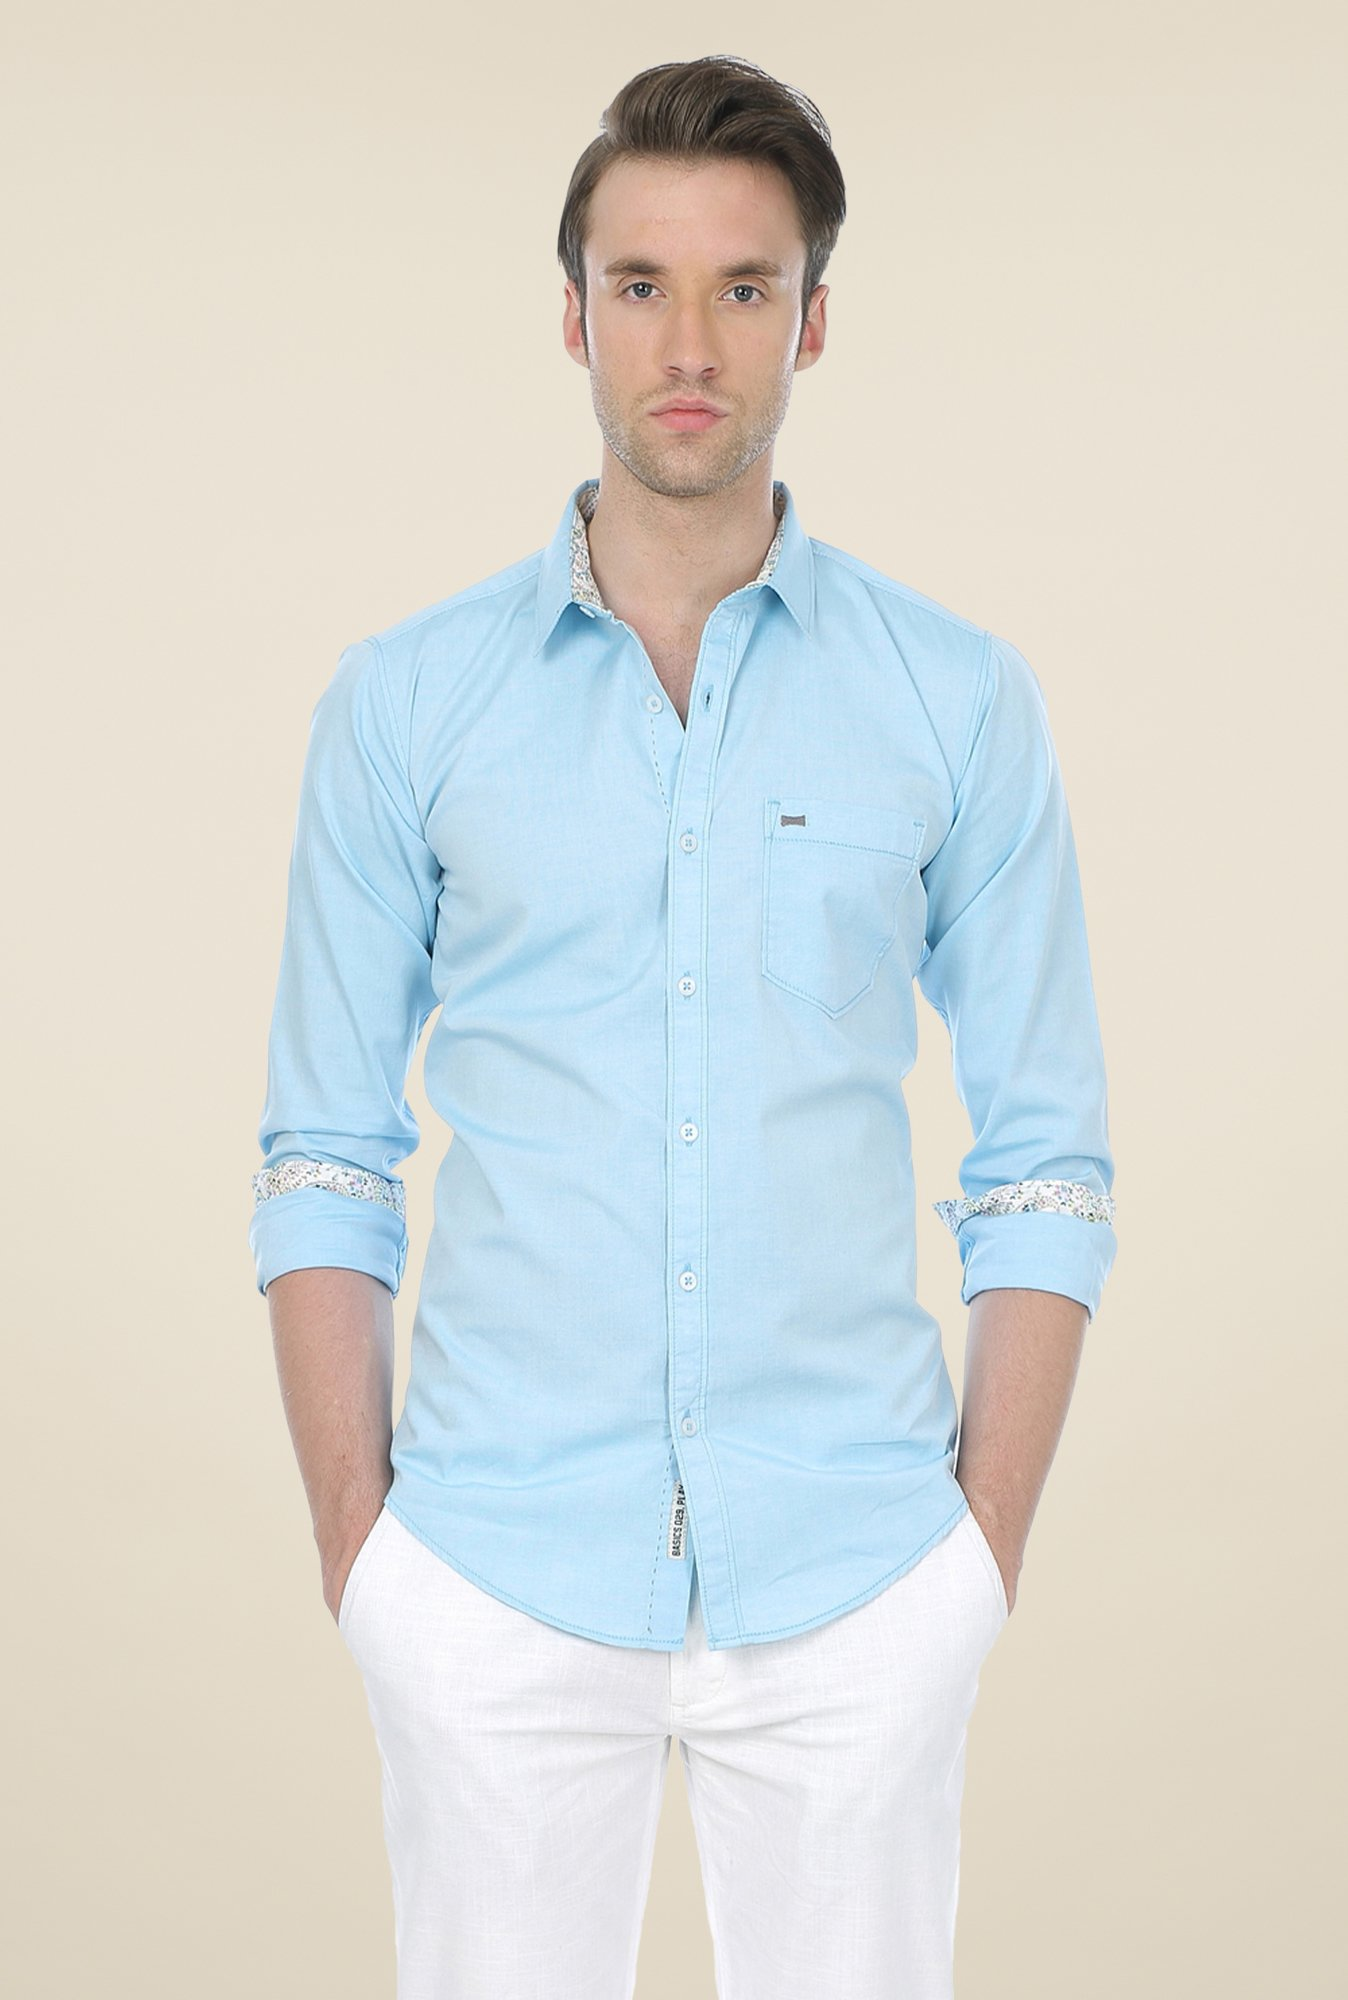 Basics Aqua Solid Shirt